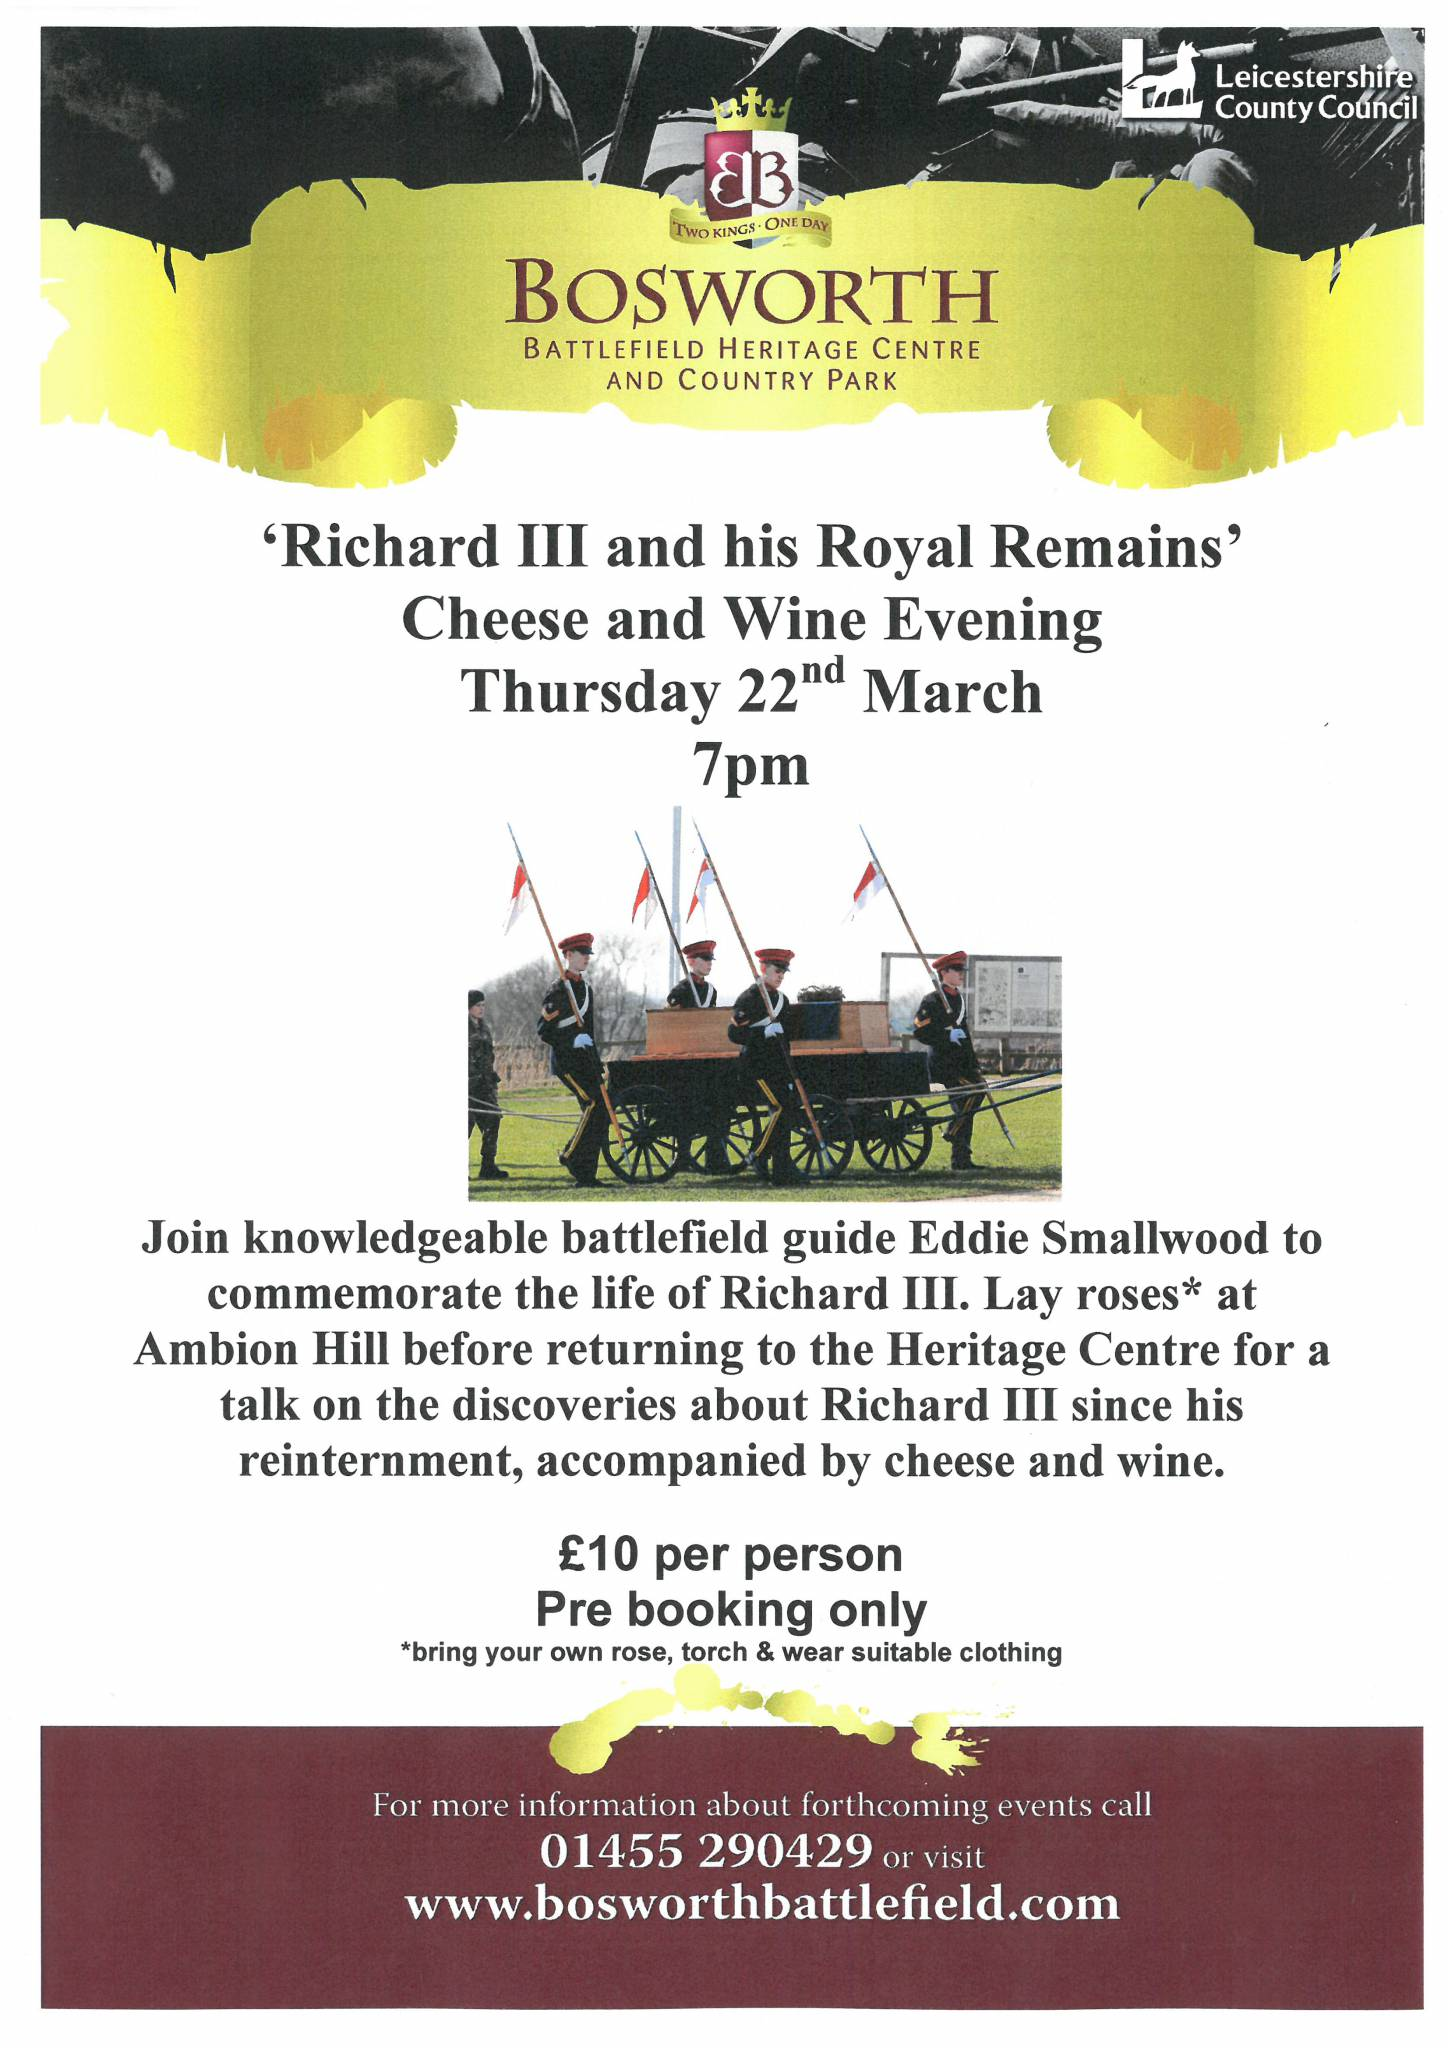 Richard III and his Royal Remains